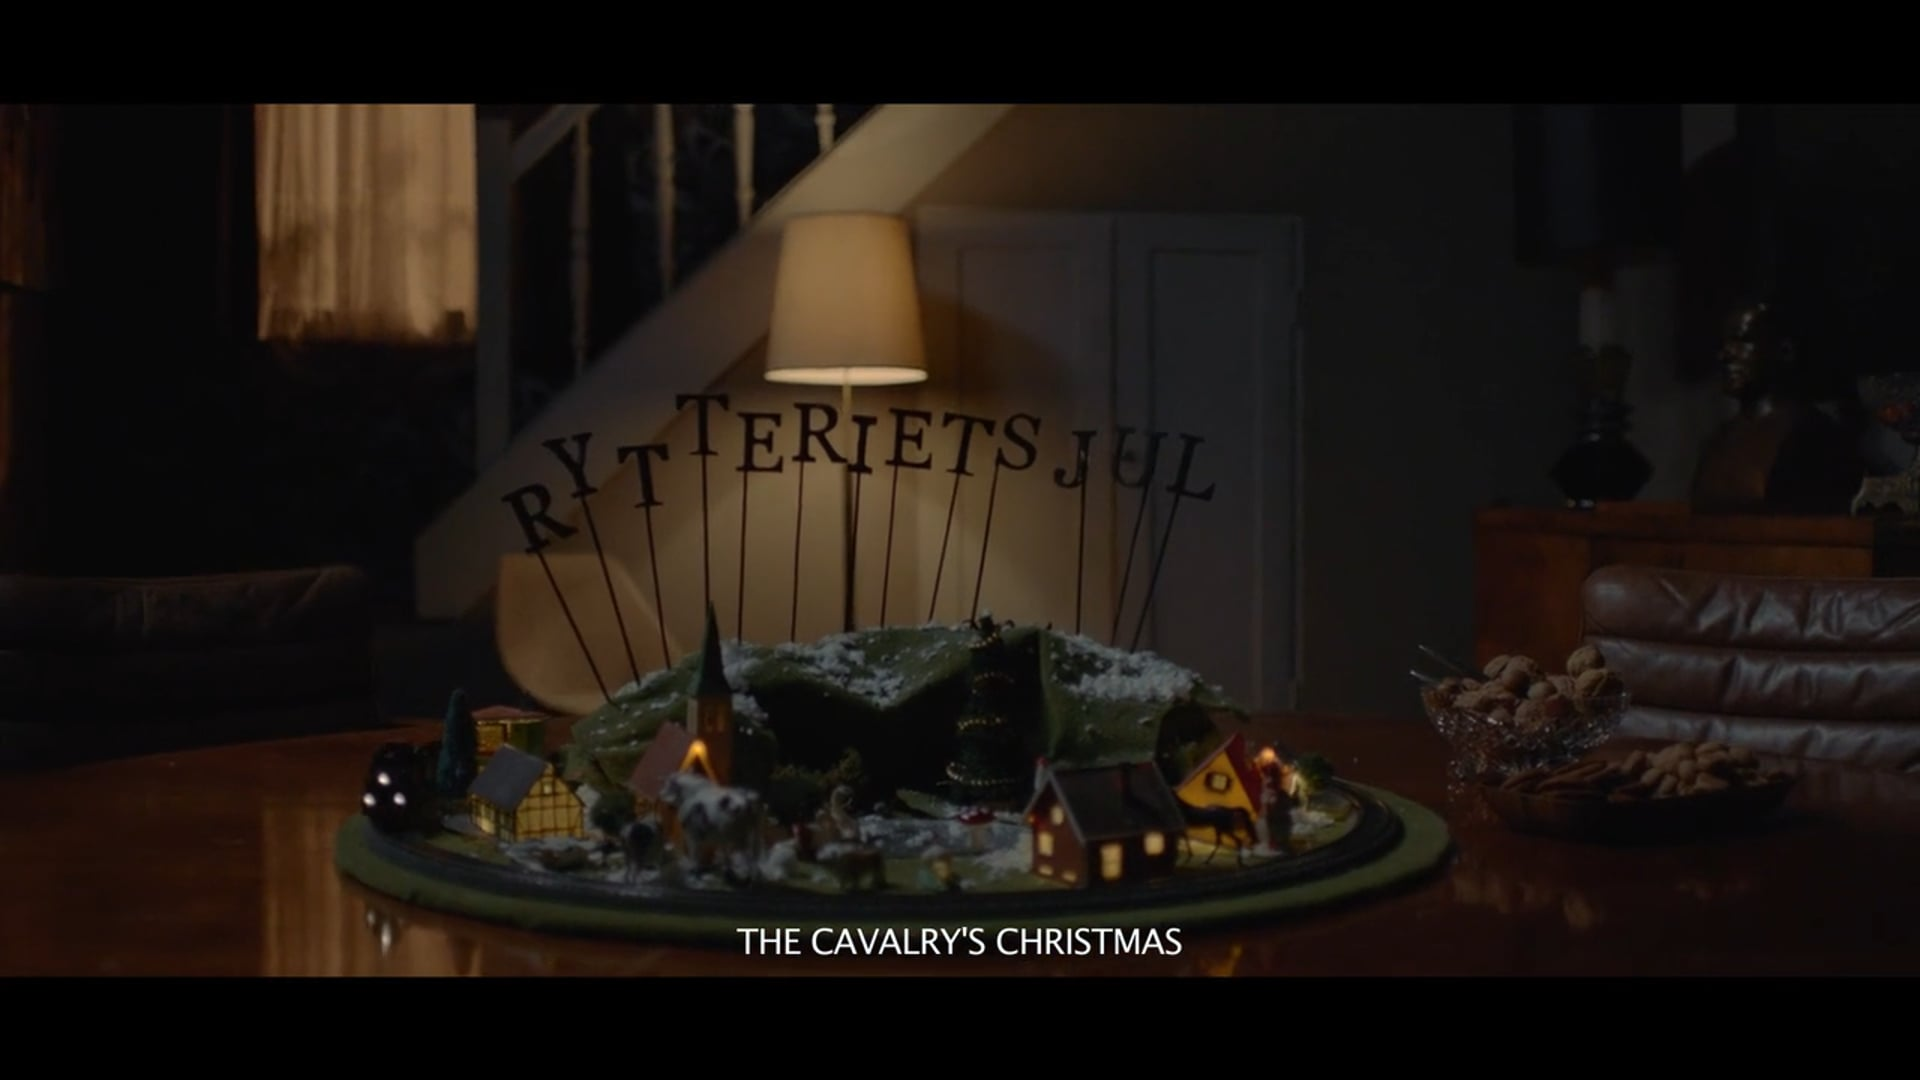 RYTTERIETS JUL (The Cavalry's Christmas) - Episode I